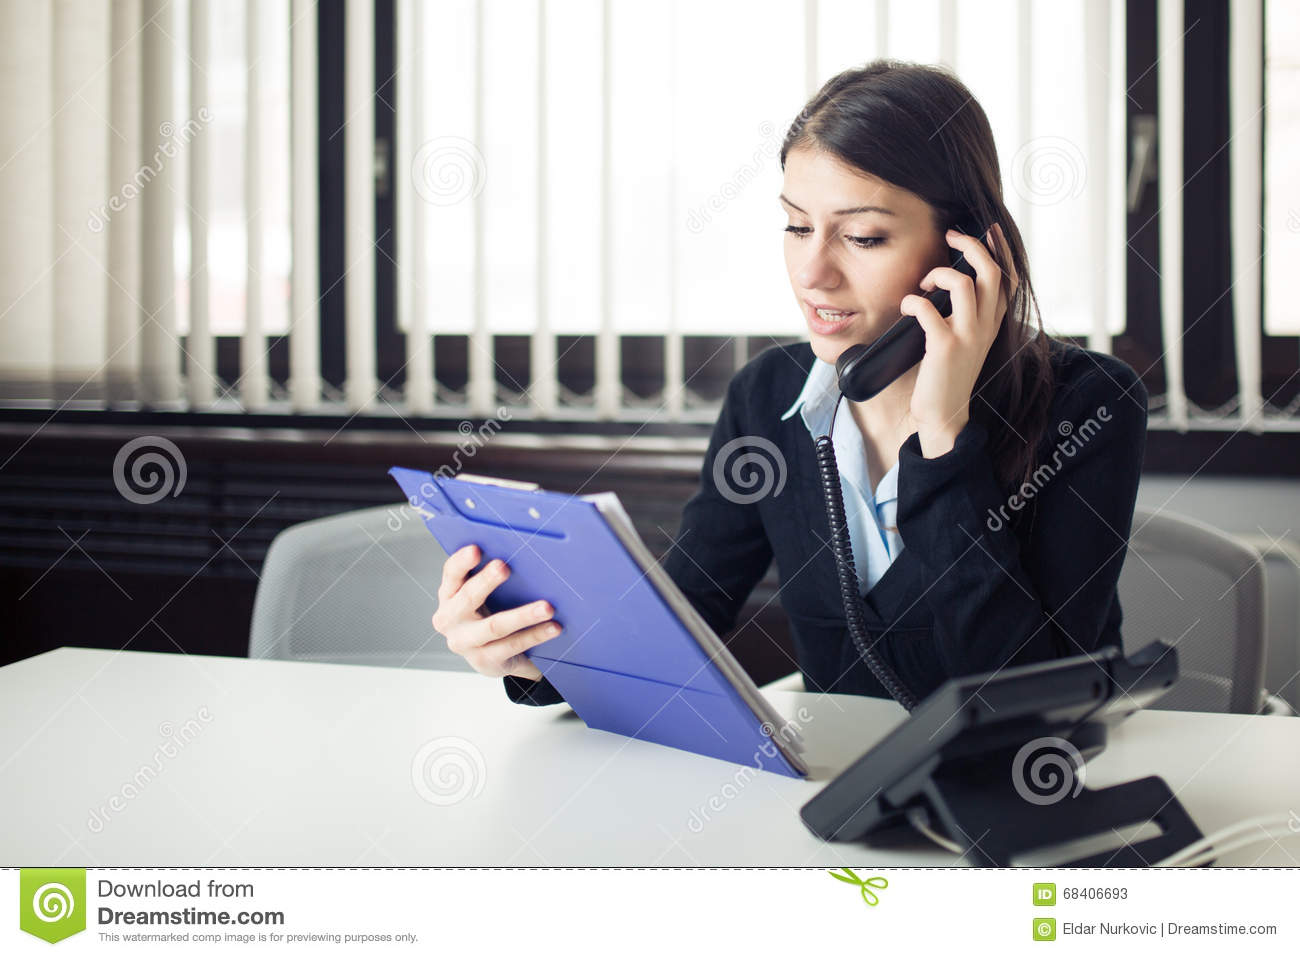 Download Organized Responsible Office Worker Business Woman Giving Instructions Via Phone Call.Looking Confused Checking Notes And Paperwor Stock Image - Image of frustrated, disputes: 68406693